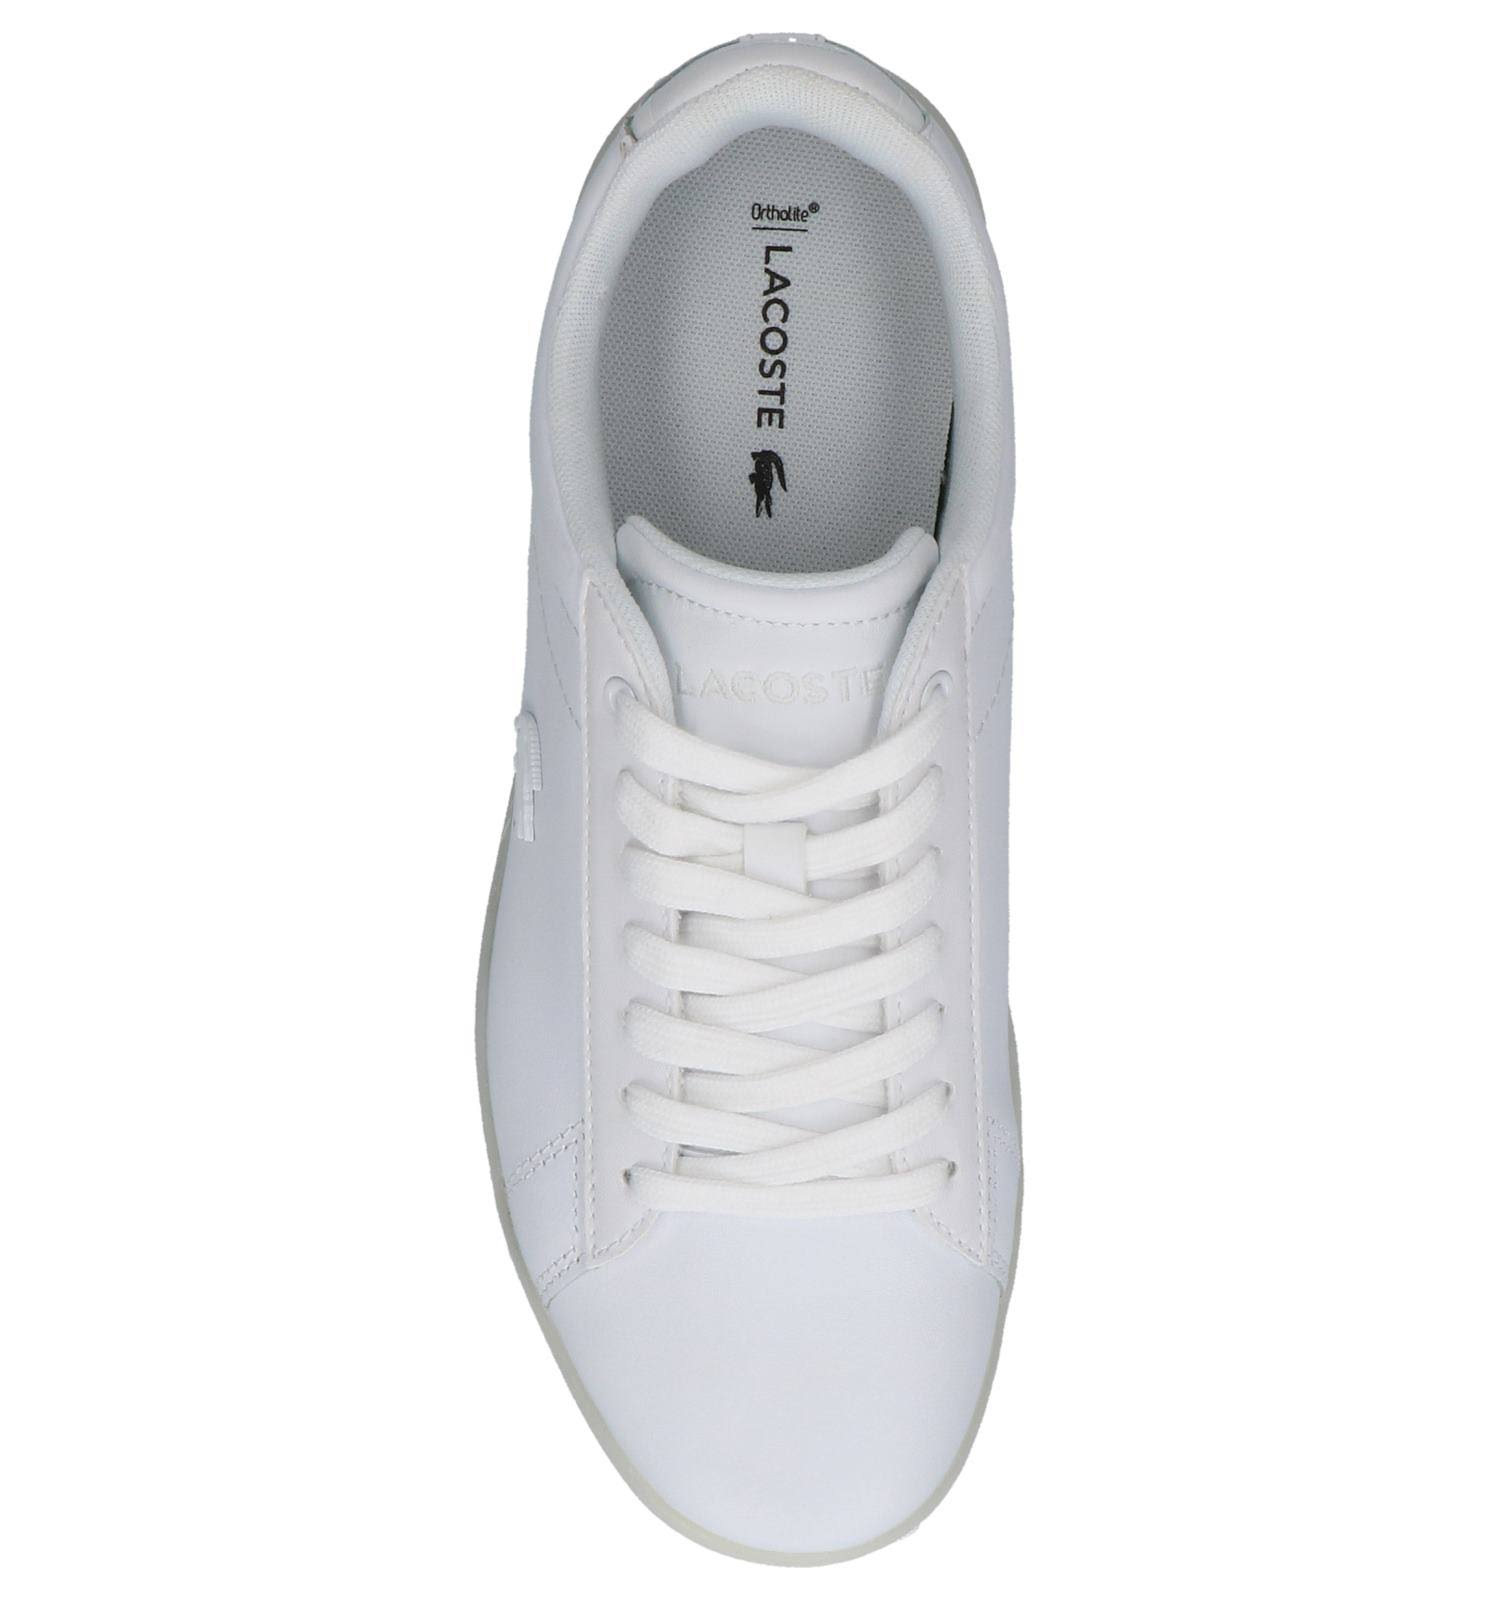 Sneakers Sneakers Wit Lacoste Evo Lacoste Wit Carnaby qqvE8